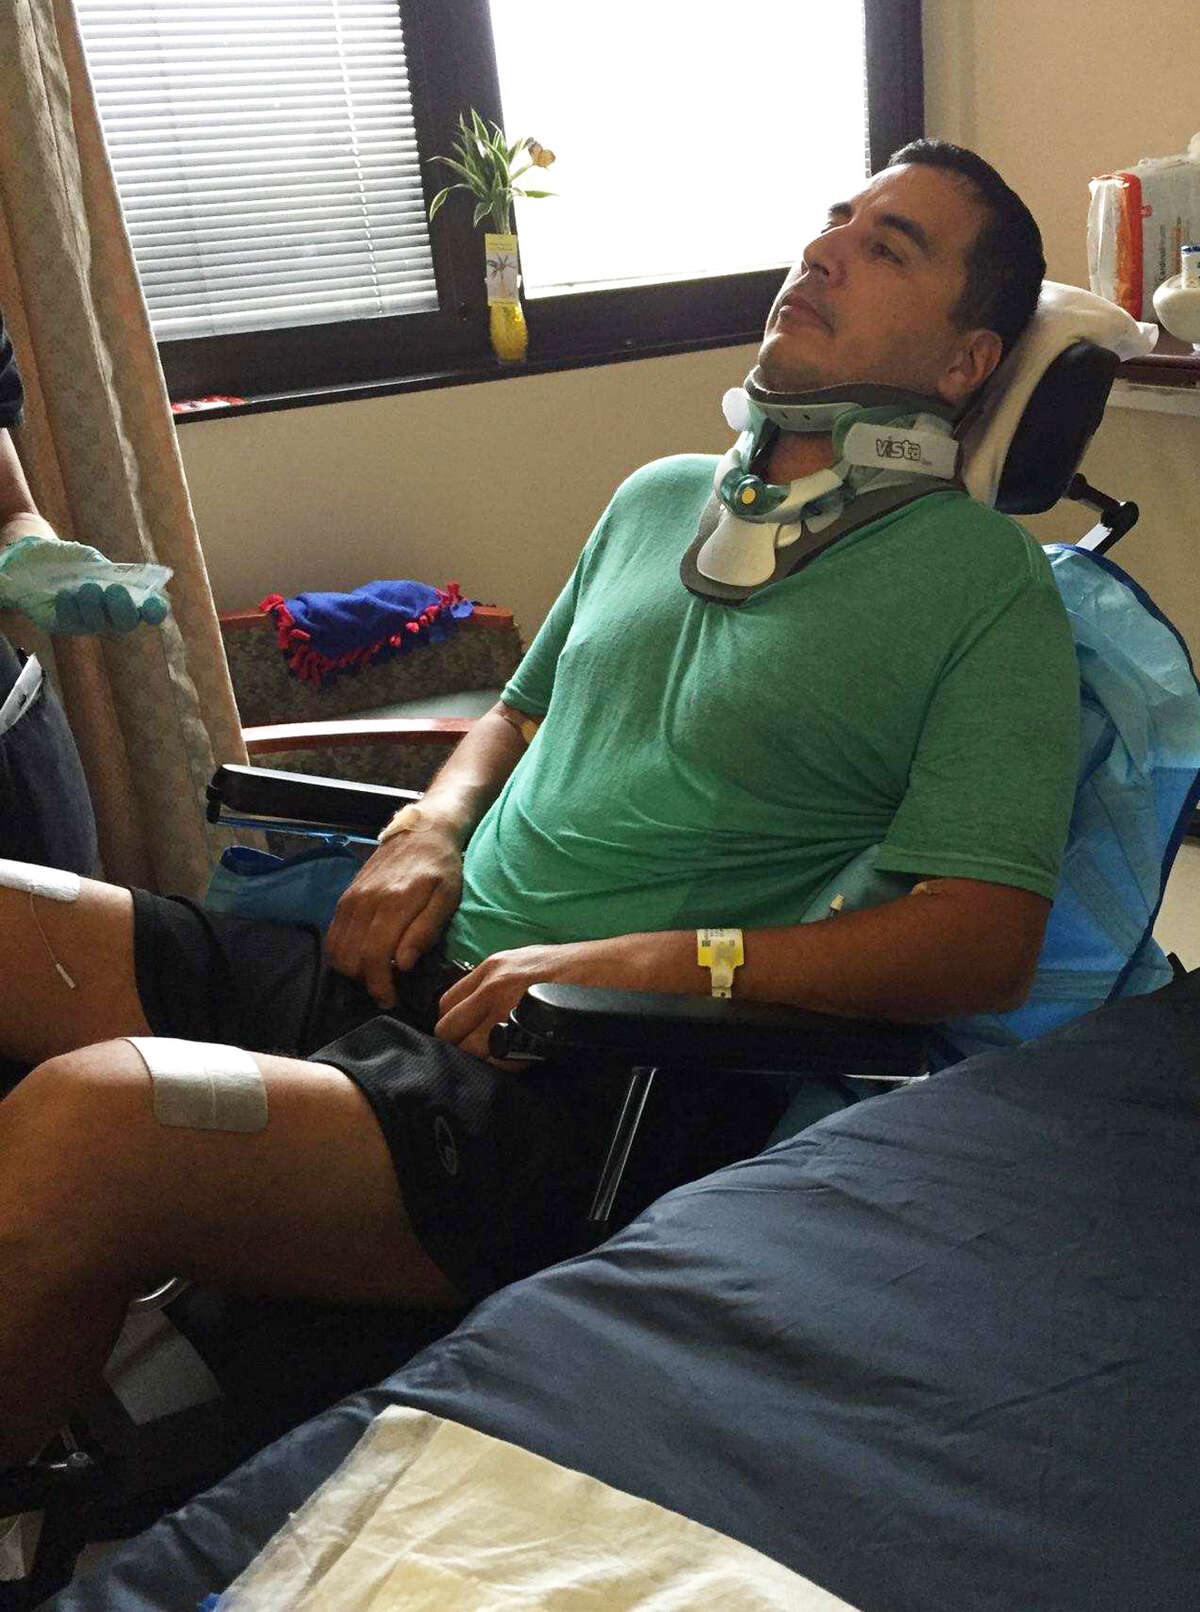 Roger Carlos received physical therapy in Houston for paralysis resulting from complications of surgery to relieve pain he suffered during the mistaken beating by San Antonio Police Department officers.